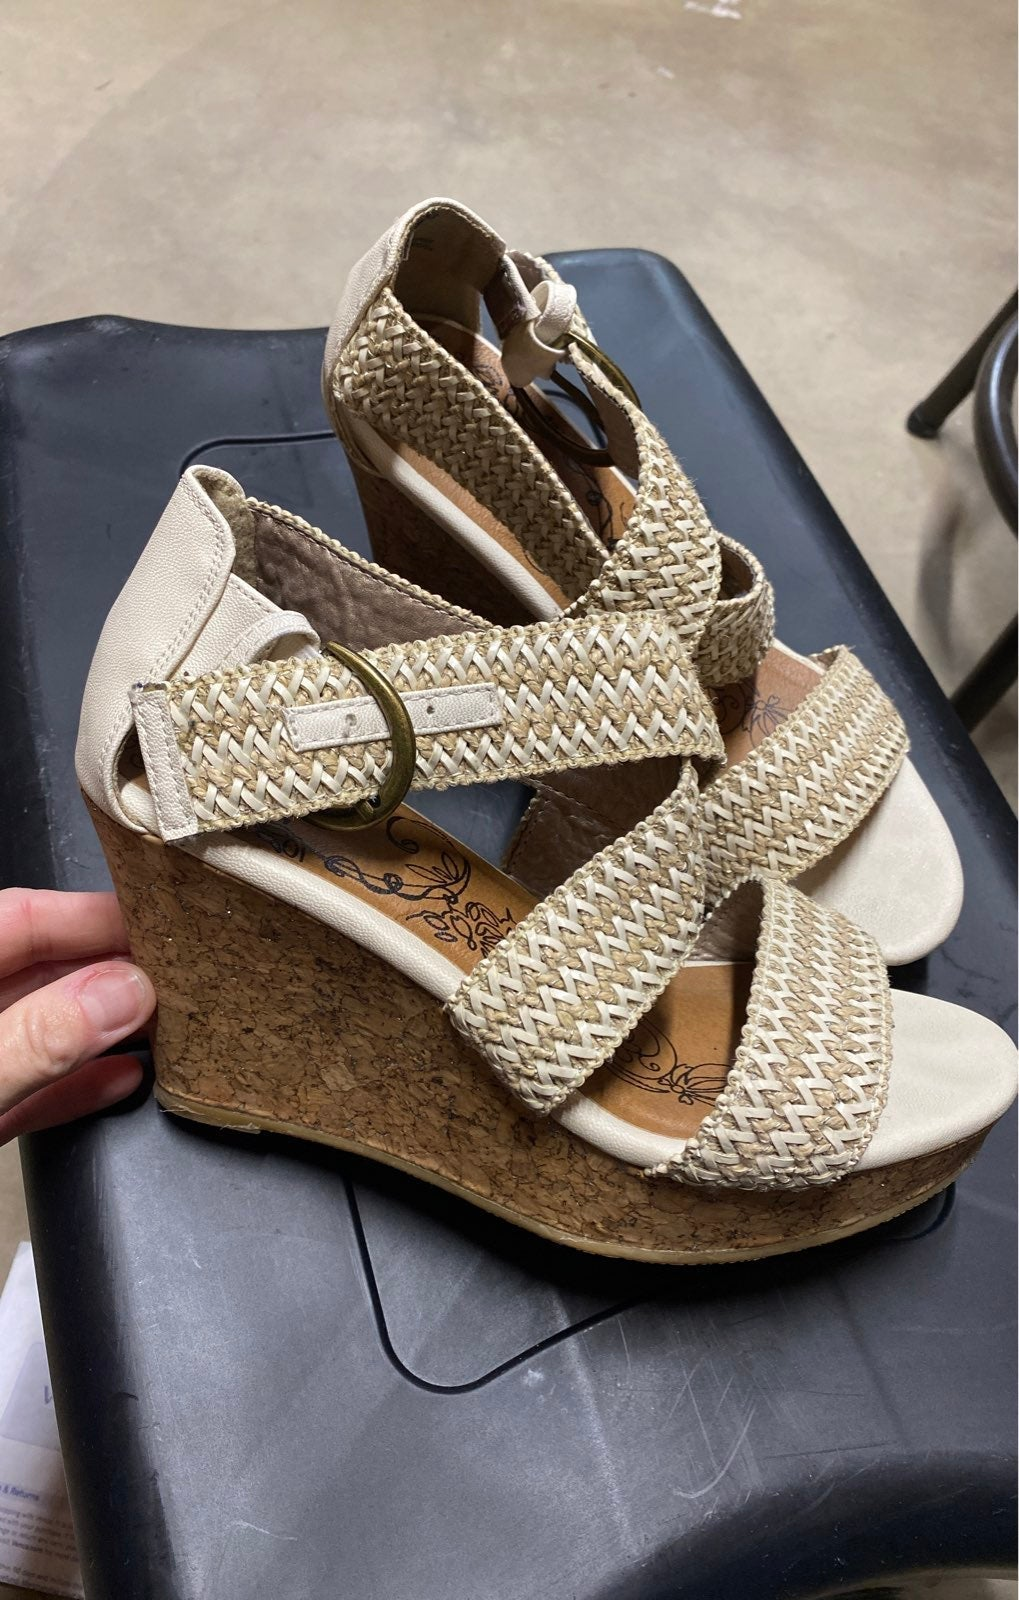 HOLD FOR KBEAR Wedge Sandals BKE 8.5 and